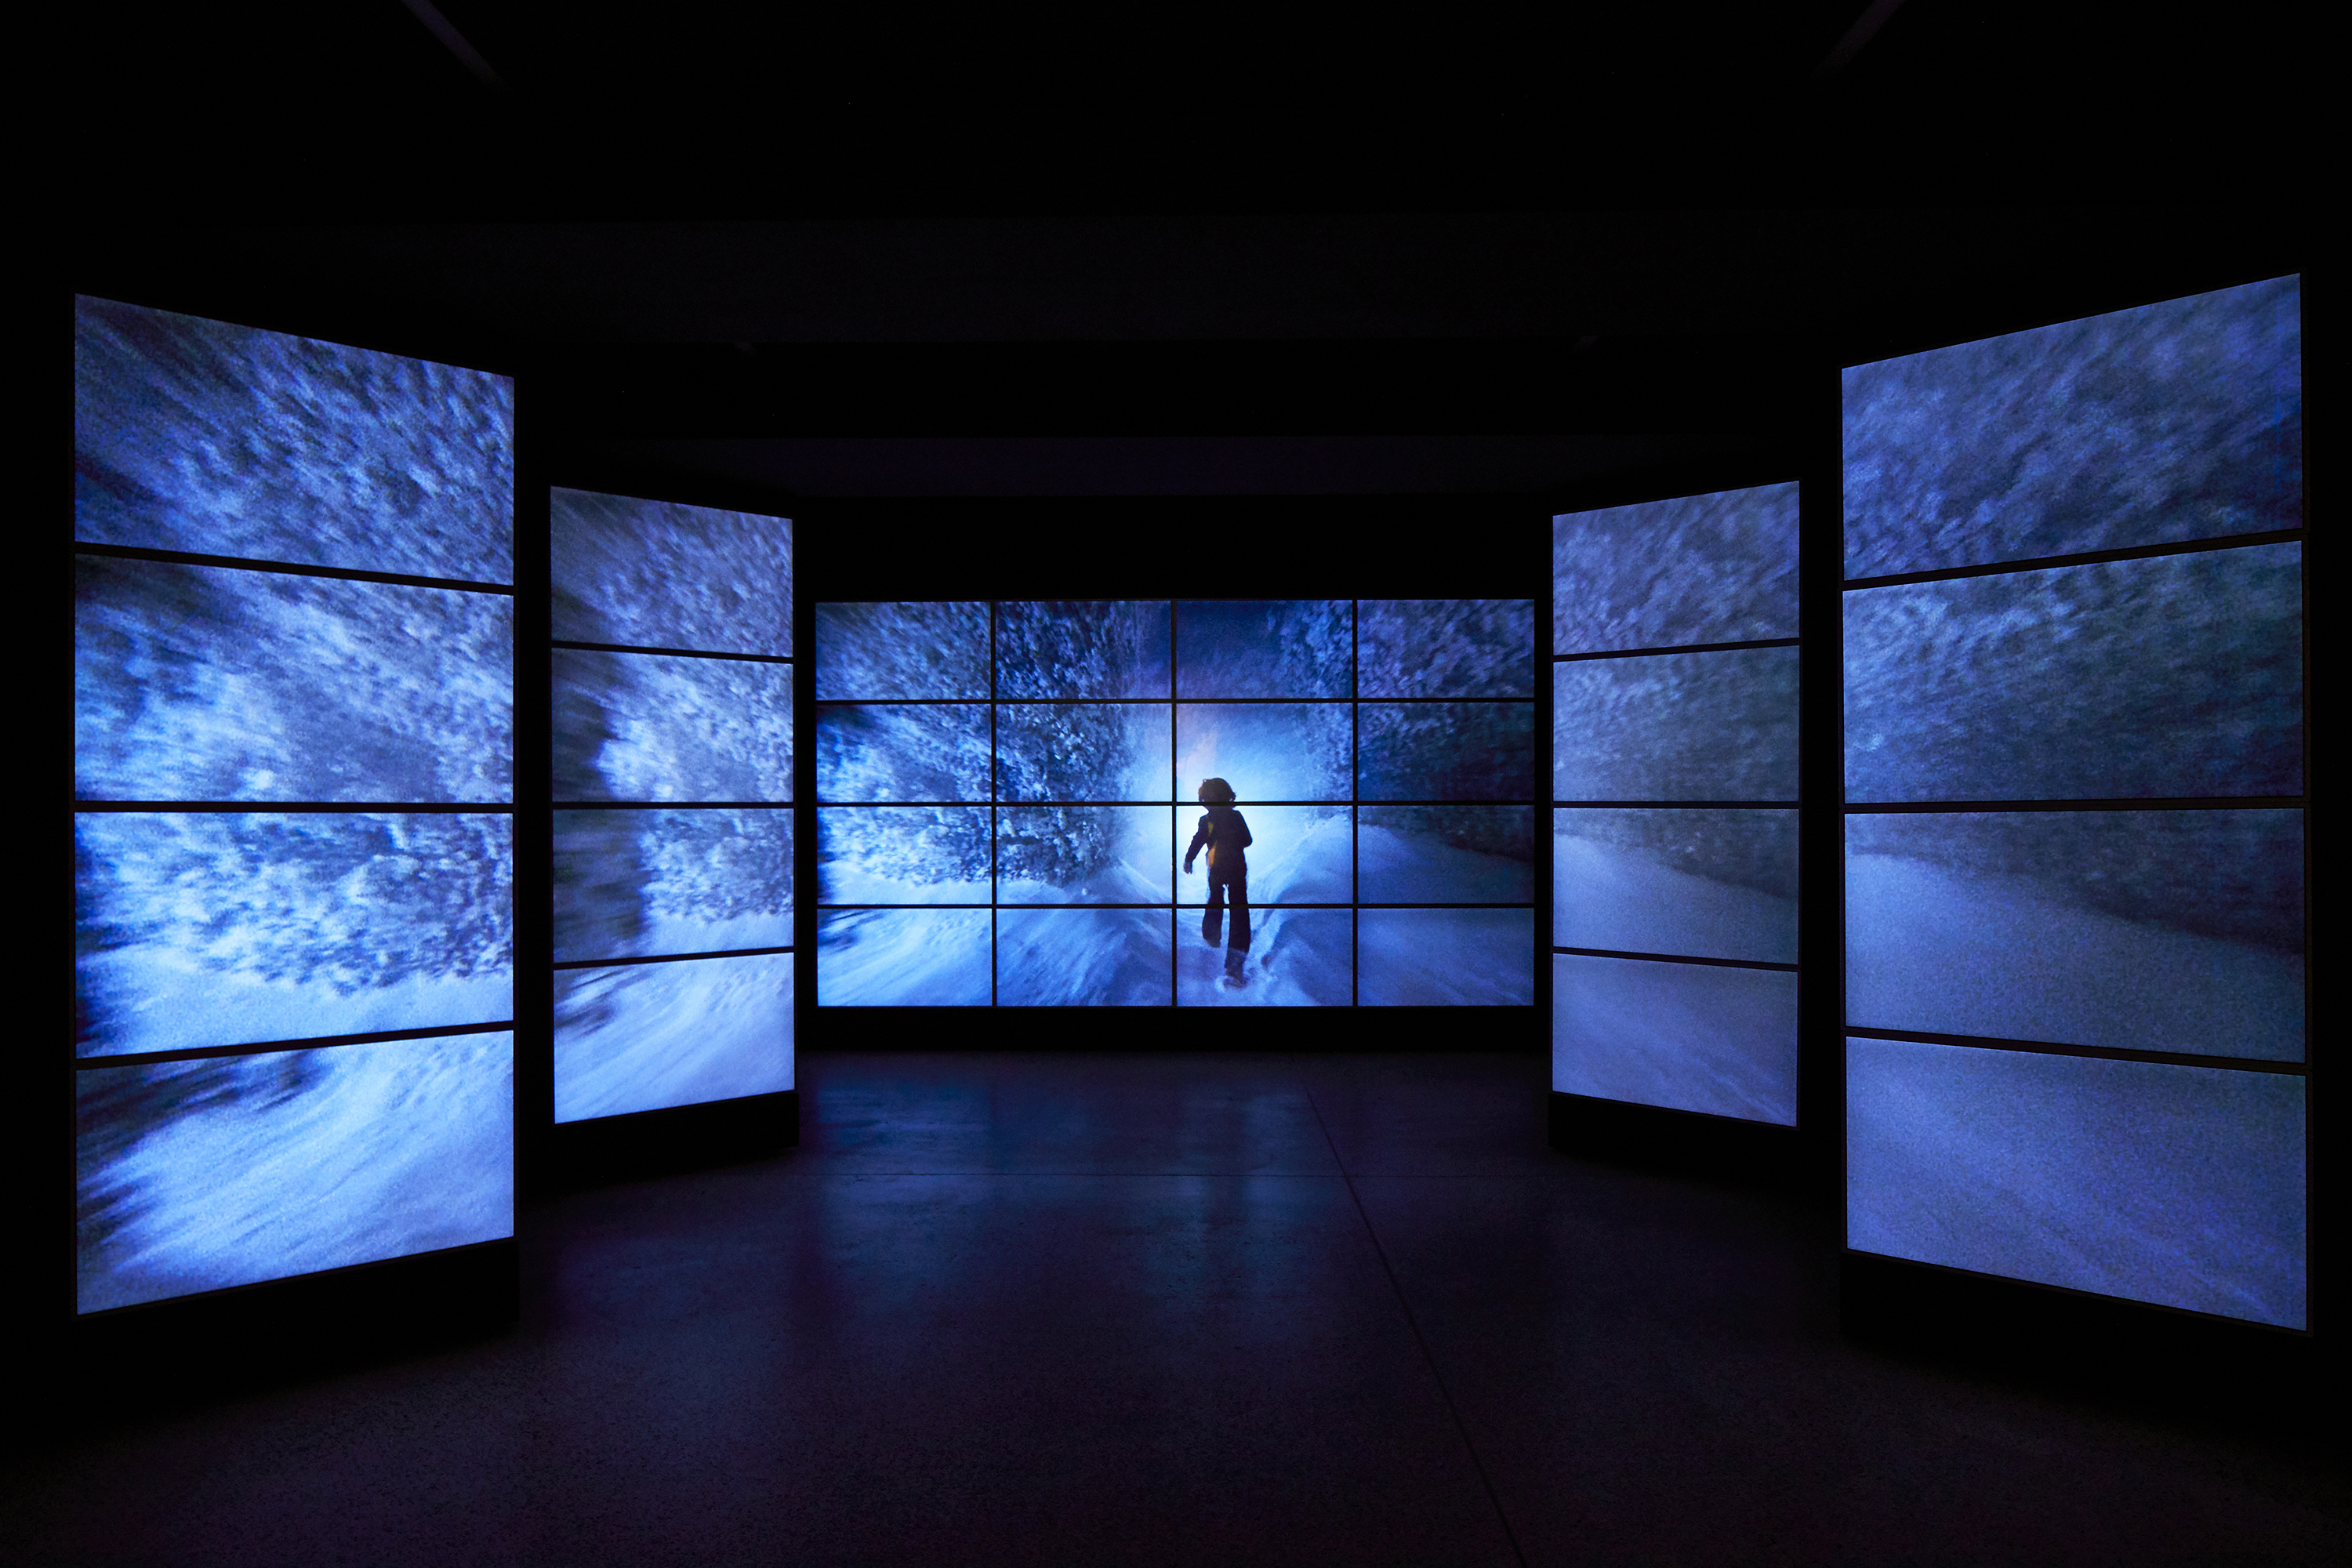 An image showing the entrance to the exhibition, flanked by video screens exhibition